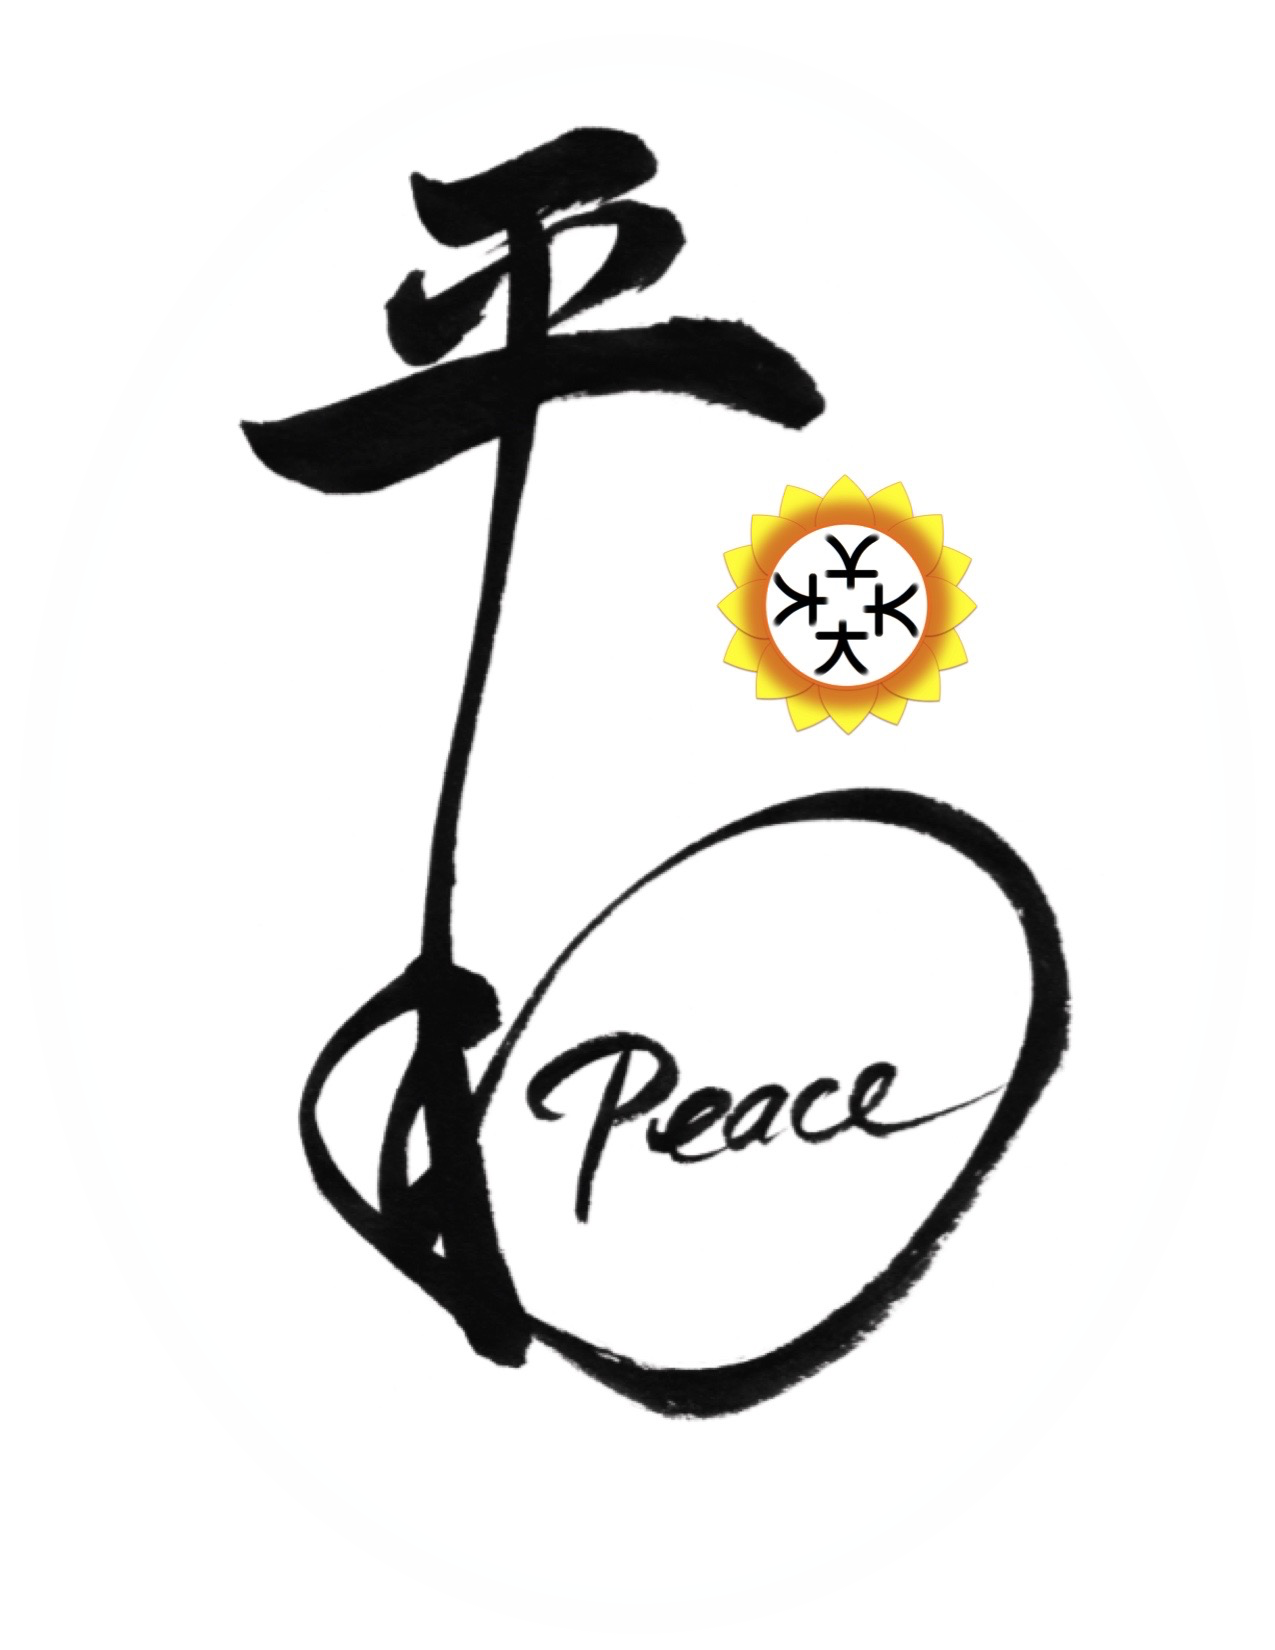 Heiwa Peace & Reconciliation Foundation of New York Ltd